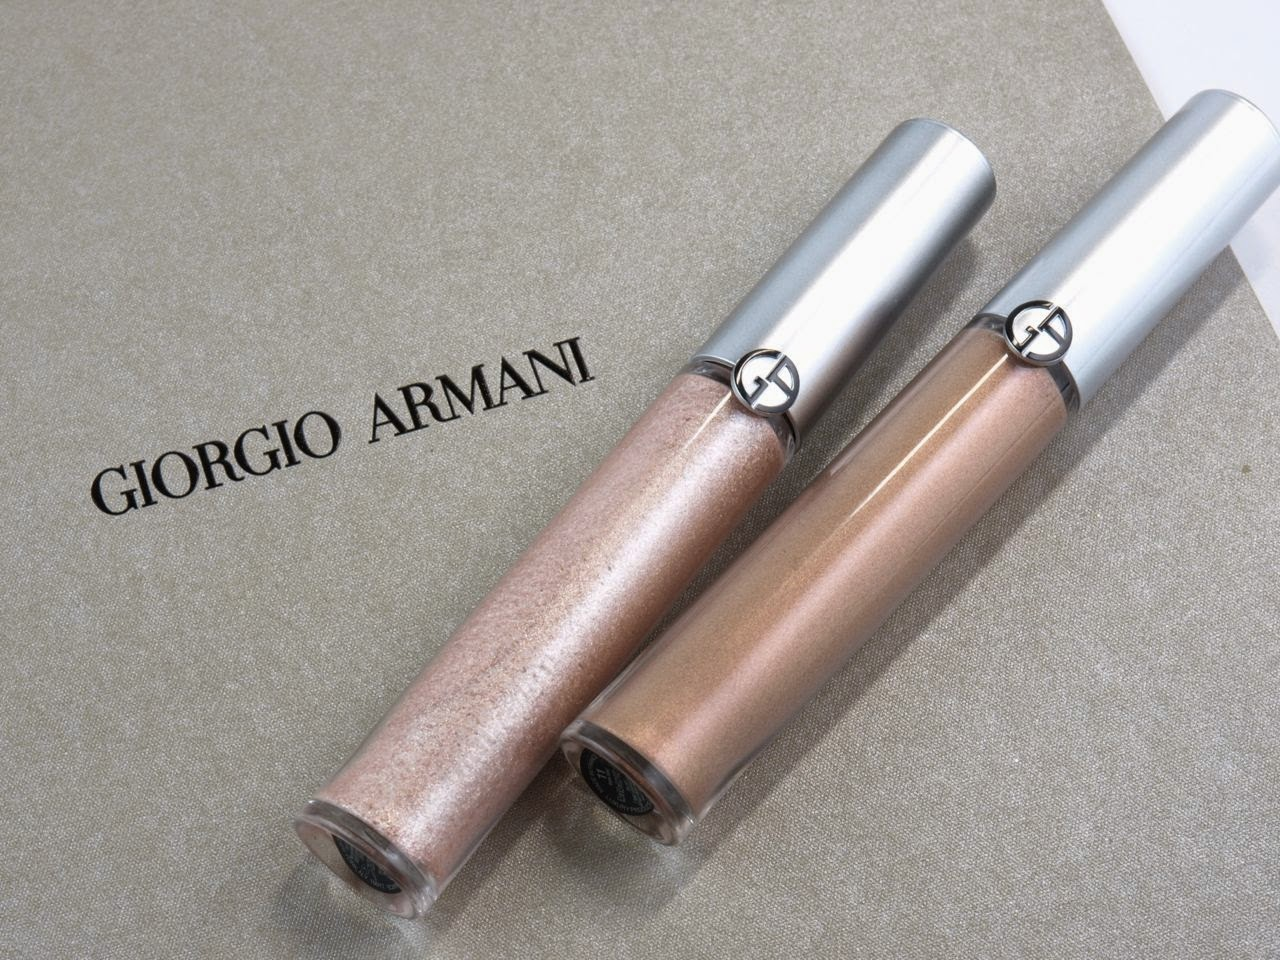 Giorgio Armani Eye Tint in #11 Rose Ashes & #12 Gold Ashes: Review and Swatches